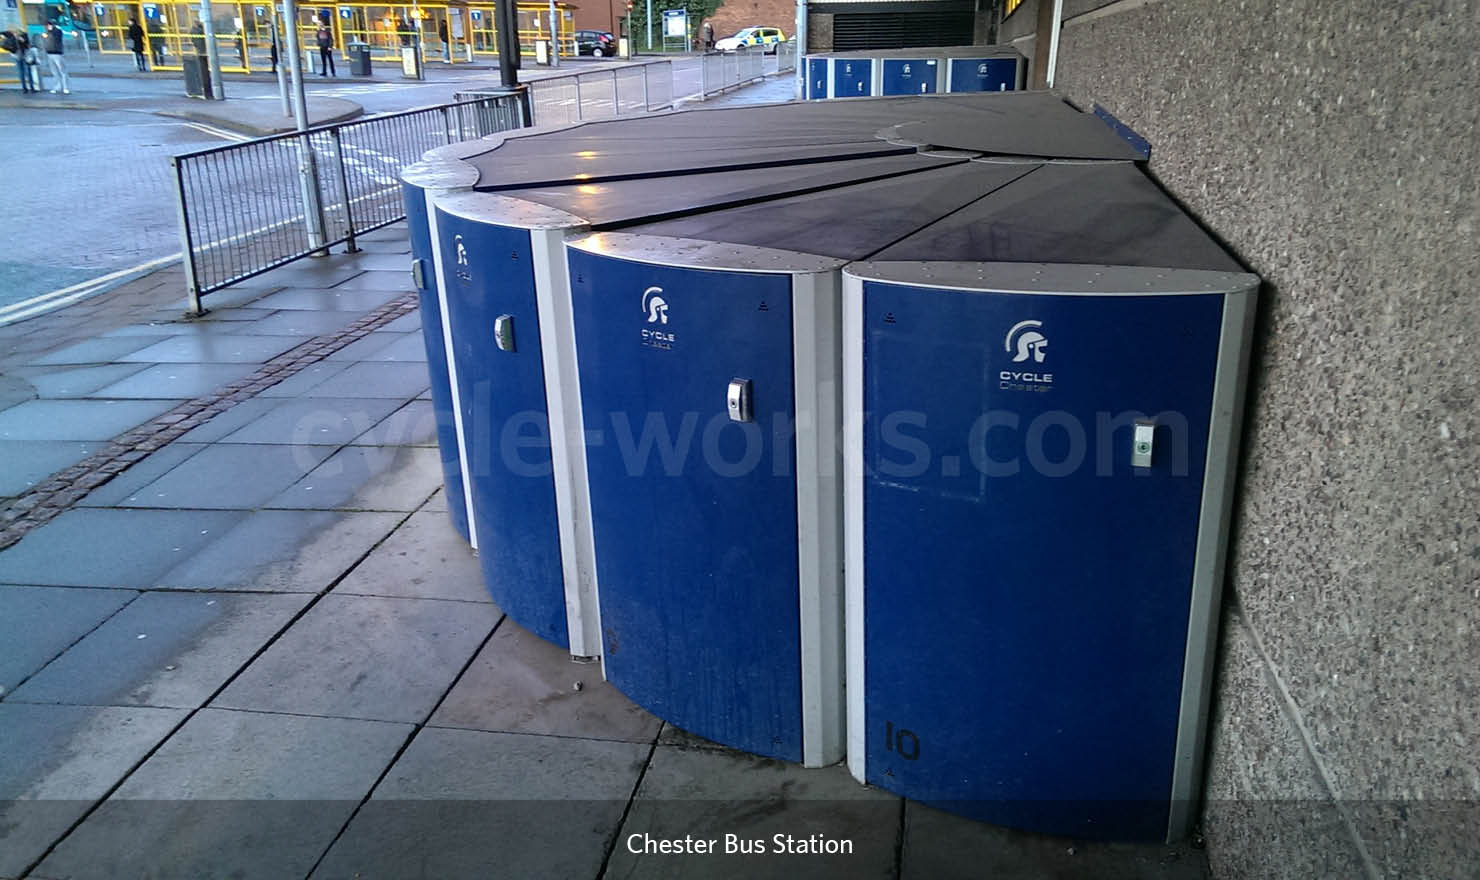 Chester Bus Station Bike Lockers